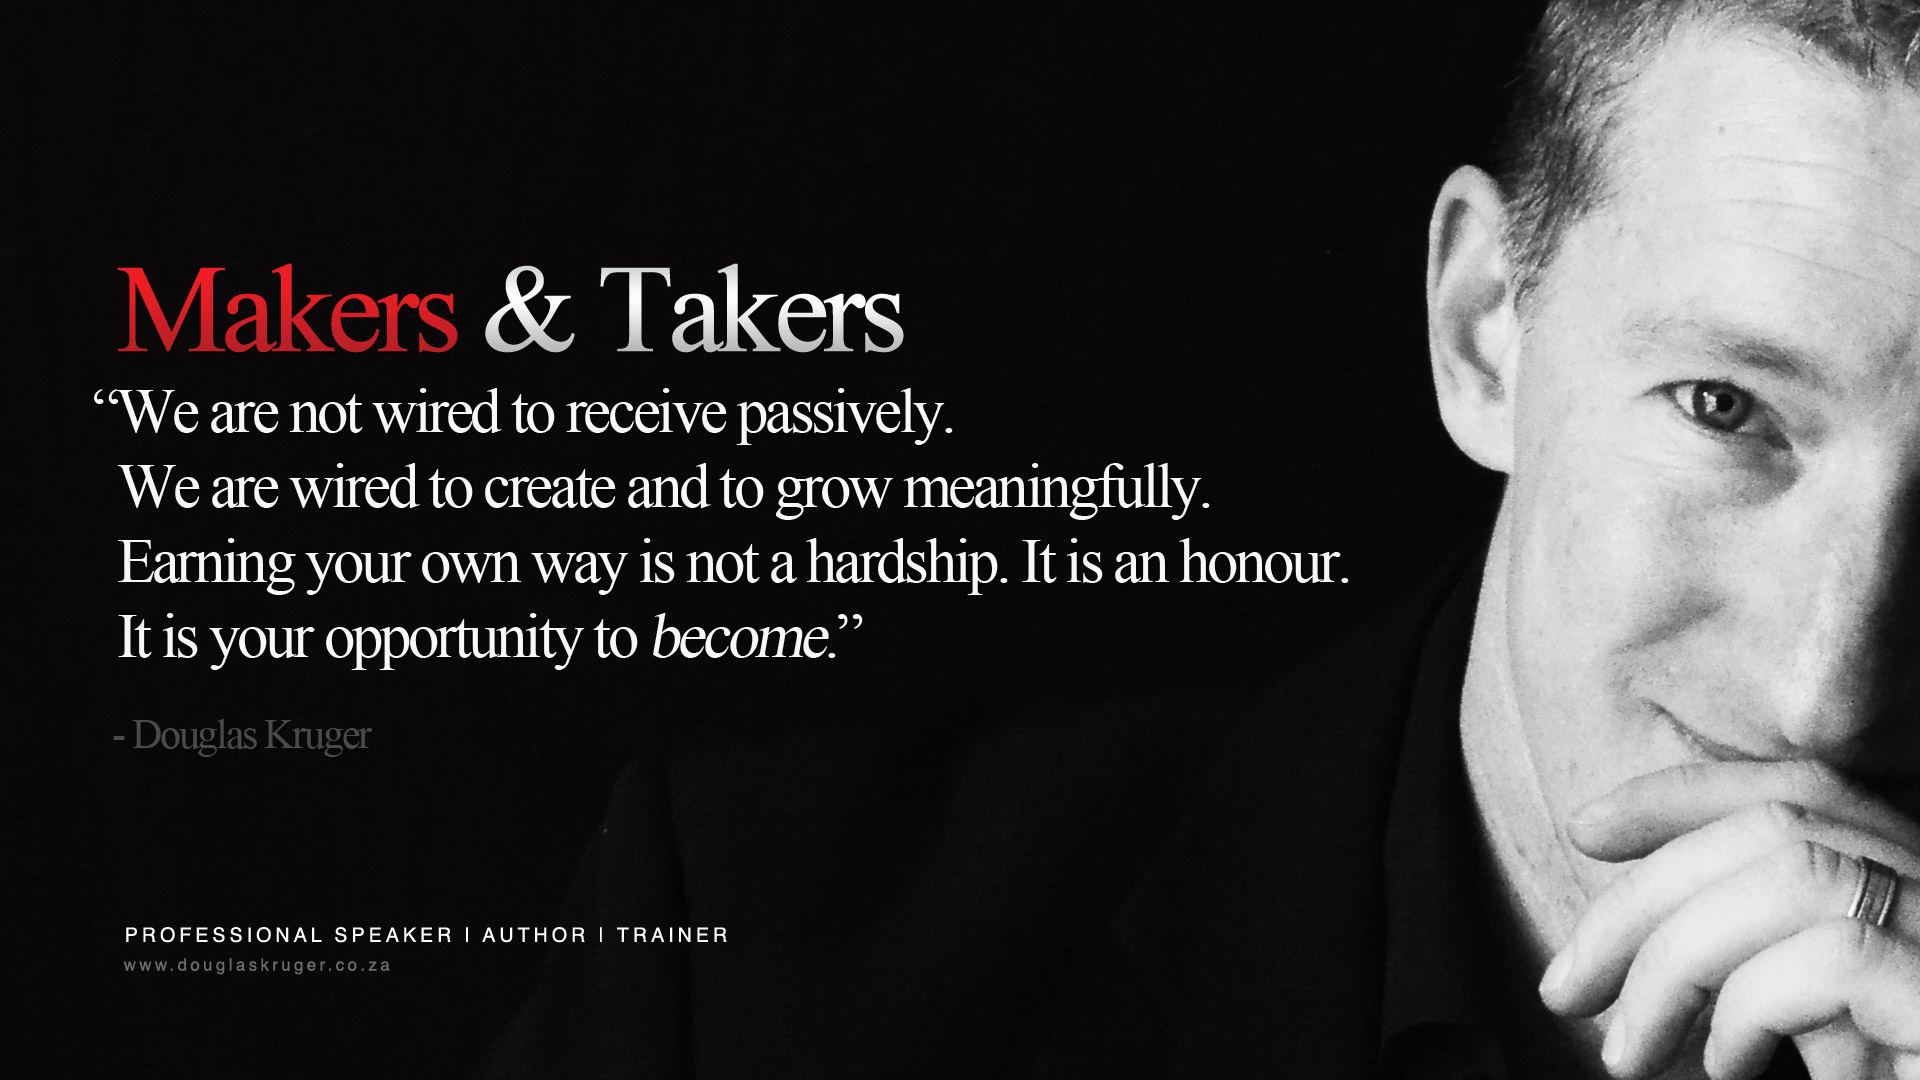 makers and takers essay Books, essays, blogs on liberty and individual freedom by libertarian   impending monetary revolution, makers and takers, trojan project.